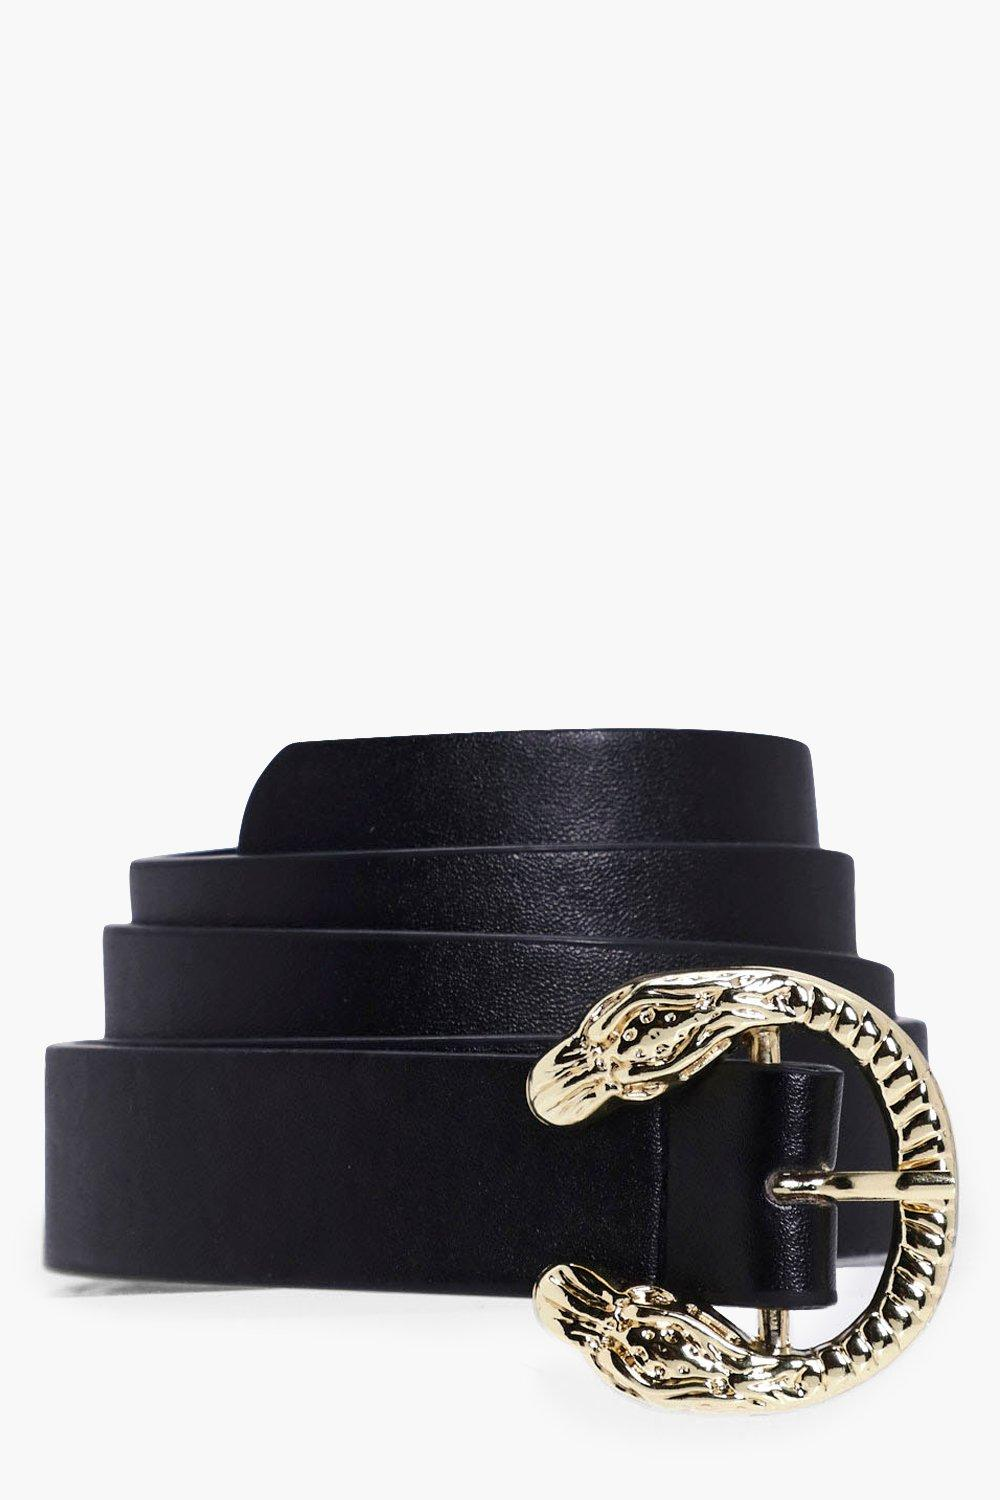 Snake Buckle Boyfriend Belt - black - Lexi Snake B